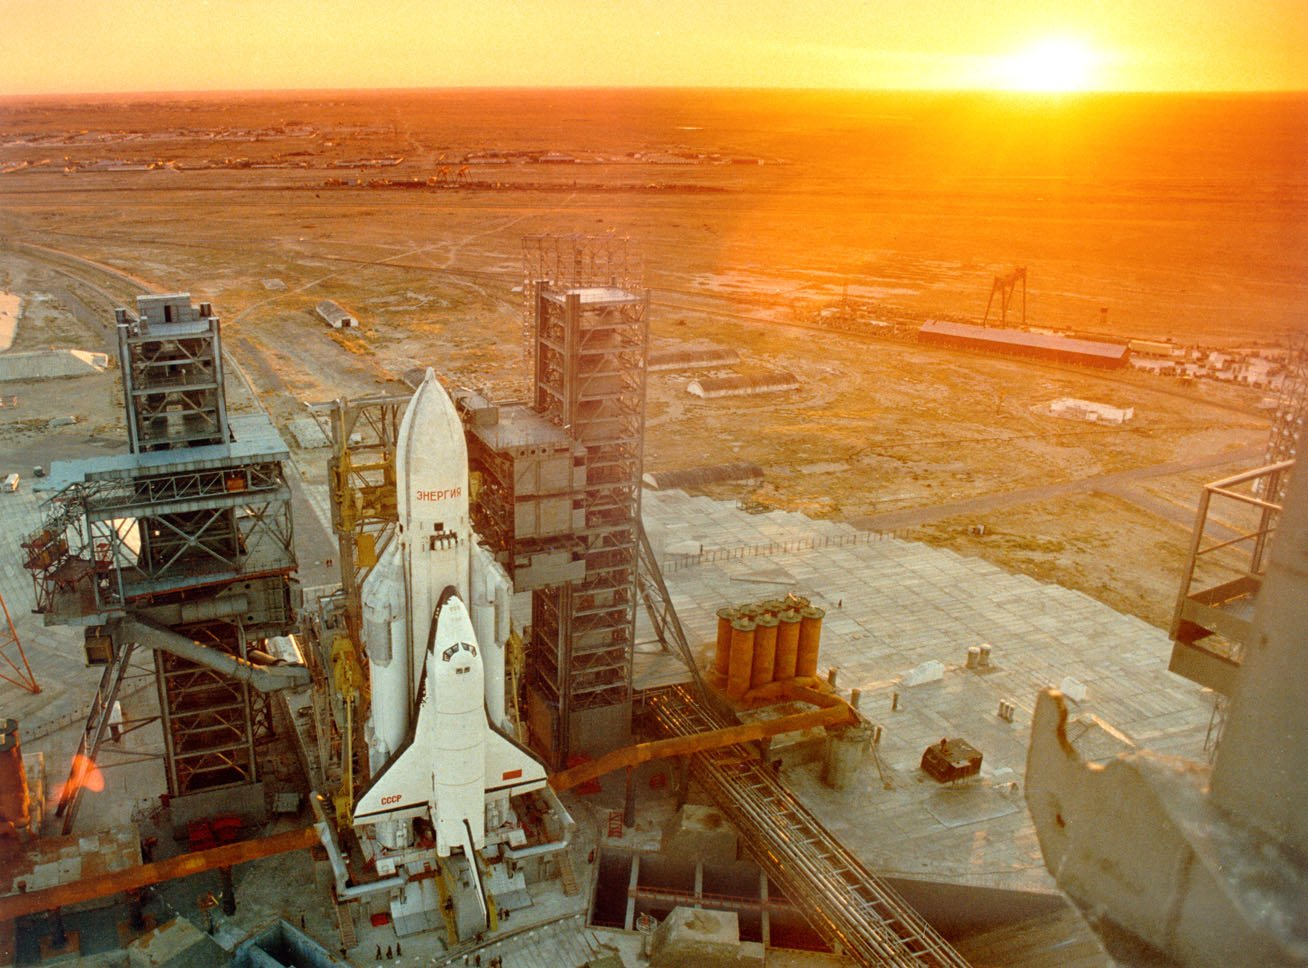 Buran space shuttle on the launch pad at the Baikonur Cosmodrome, USSR, 1988. https://t.co/KzrCSfrkcq